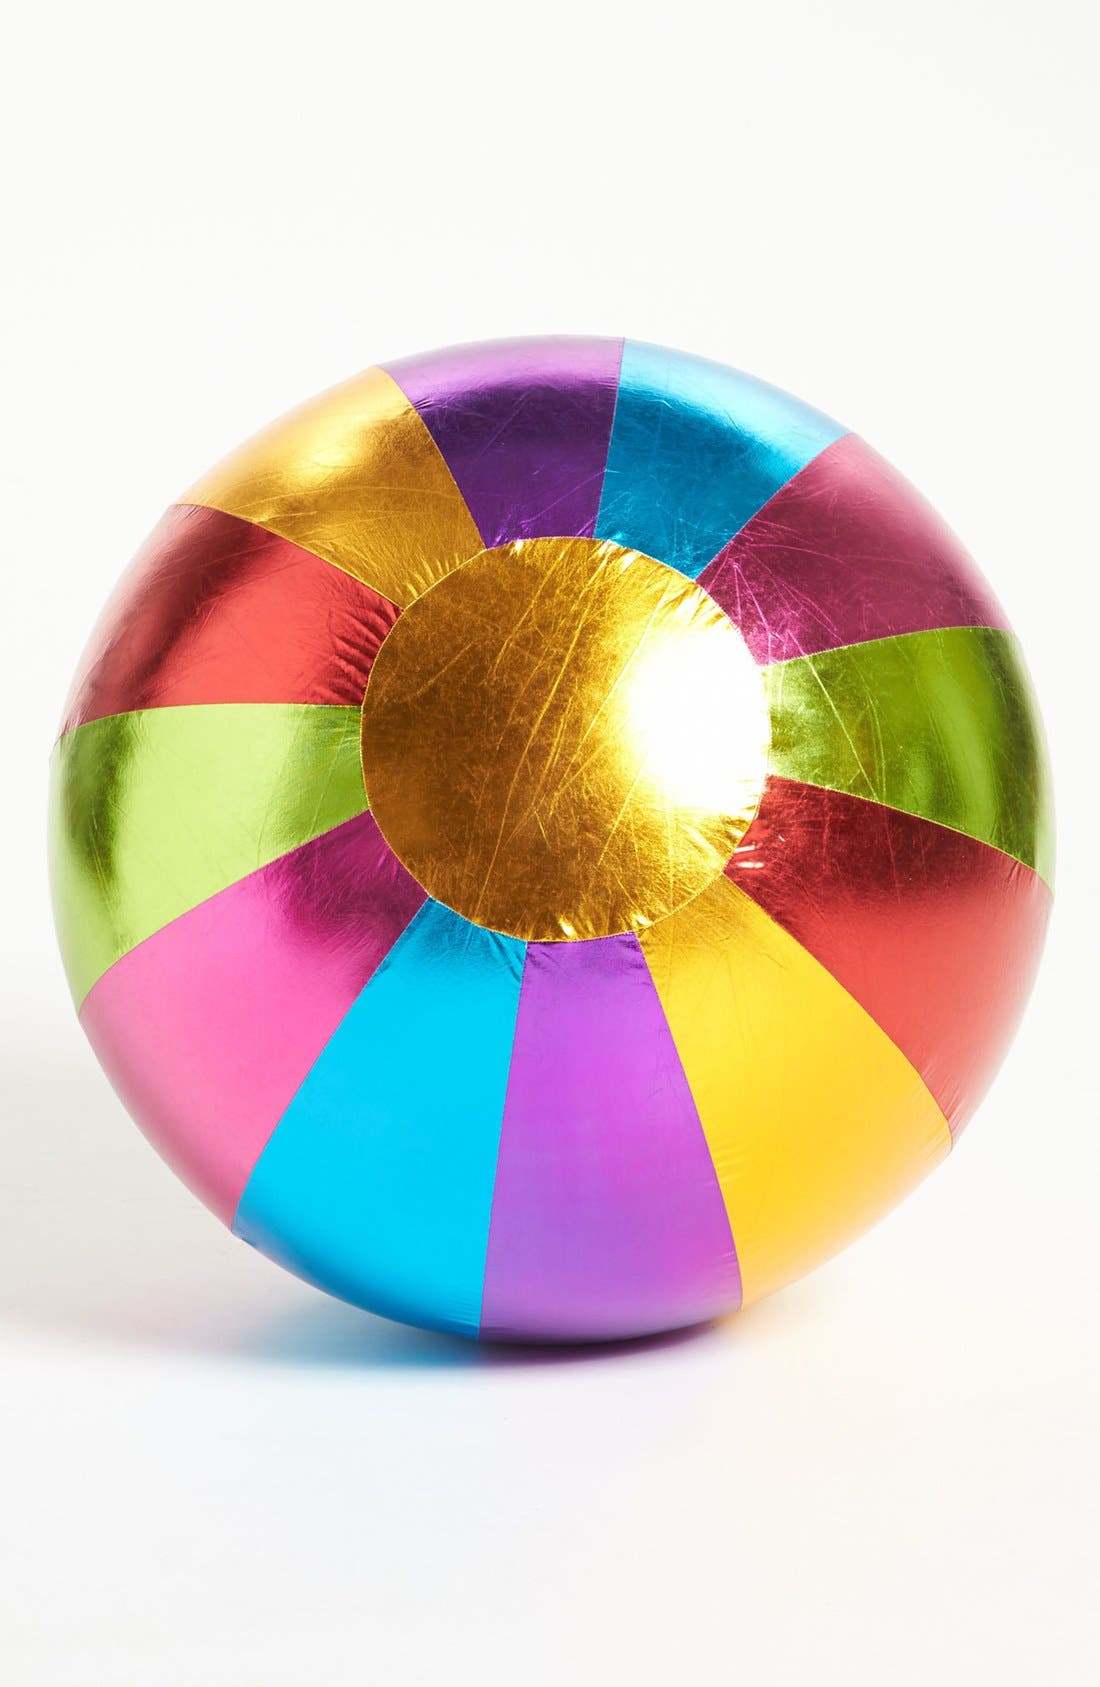 Alternate Image 1 Selected - Y'All Ball Inflatable Ball (32 inch)